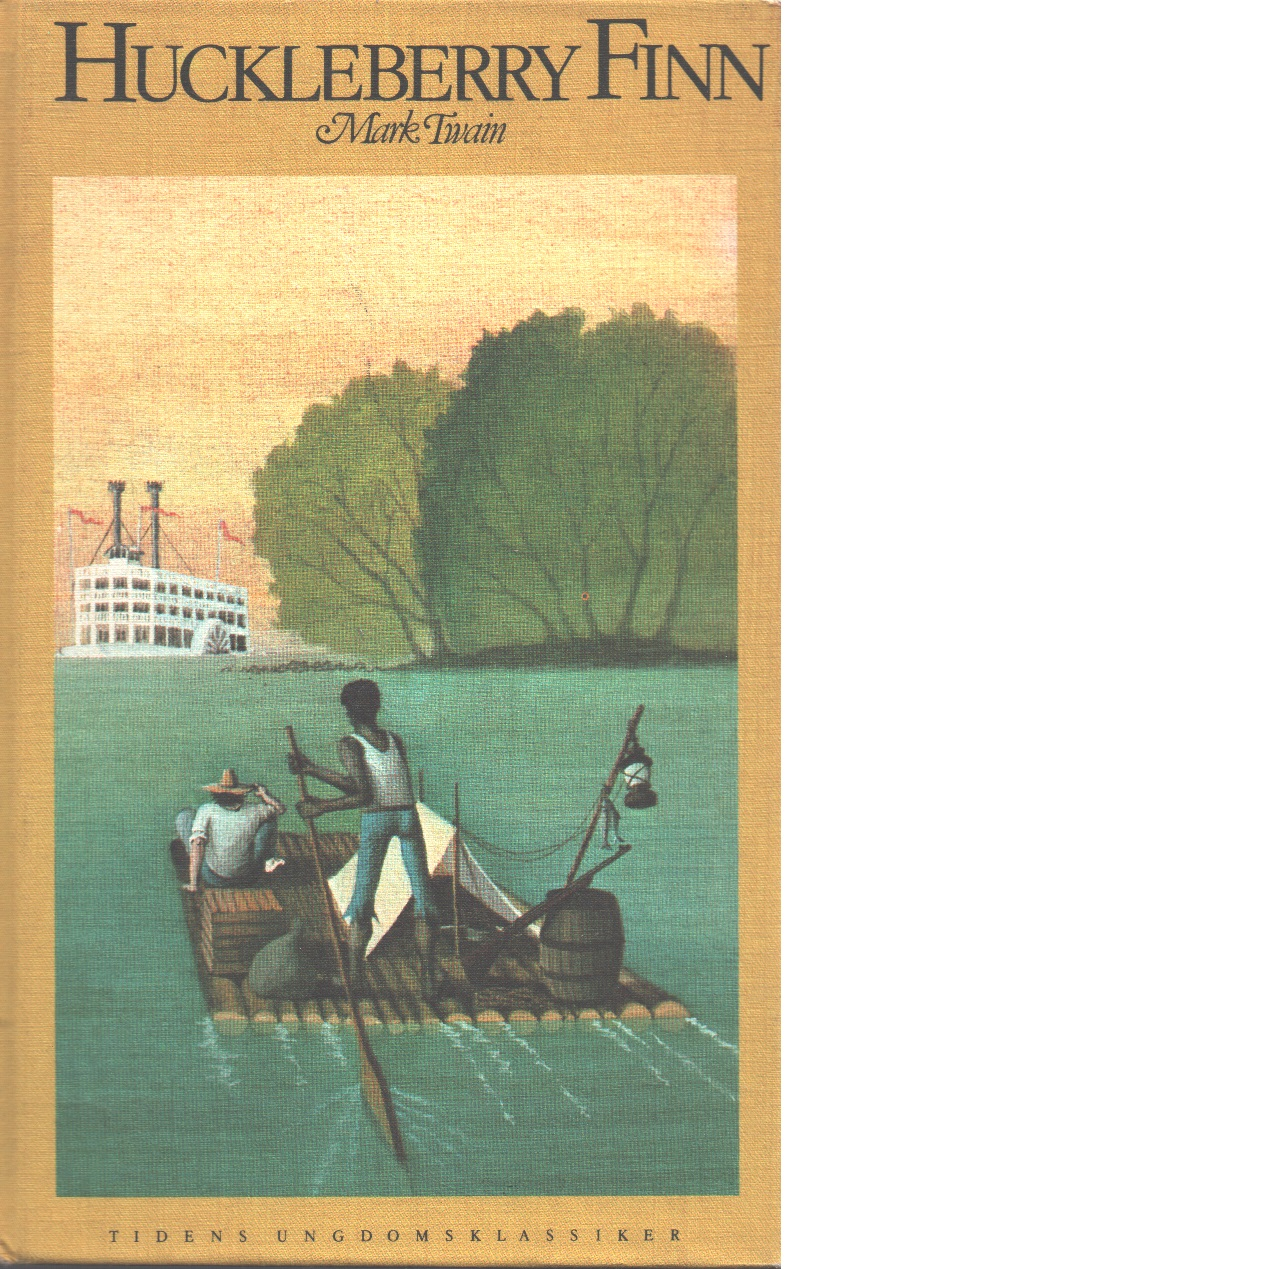 Huckleberry Finn - Twain, Mark